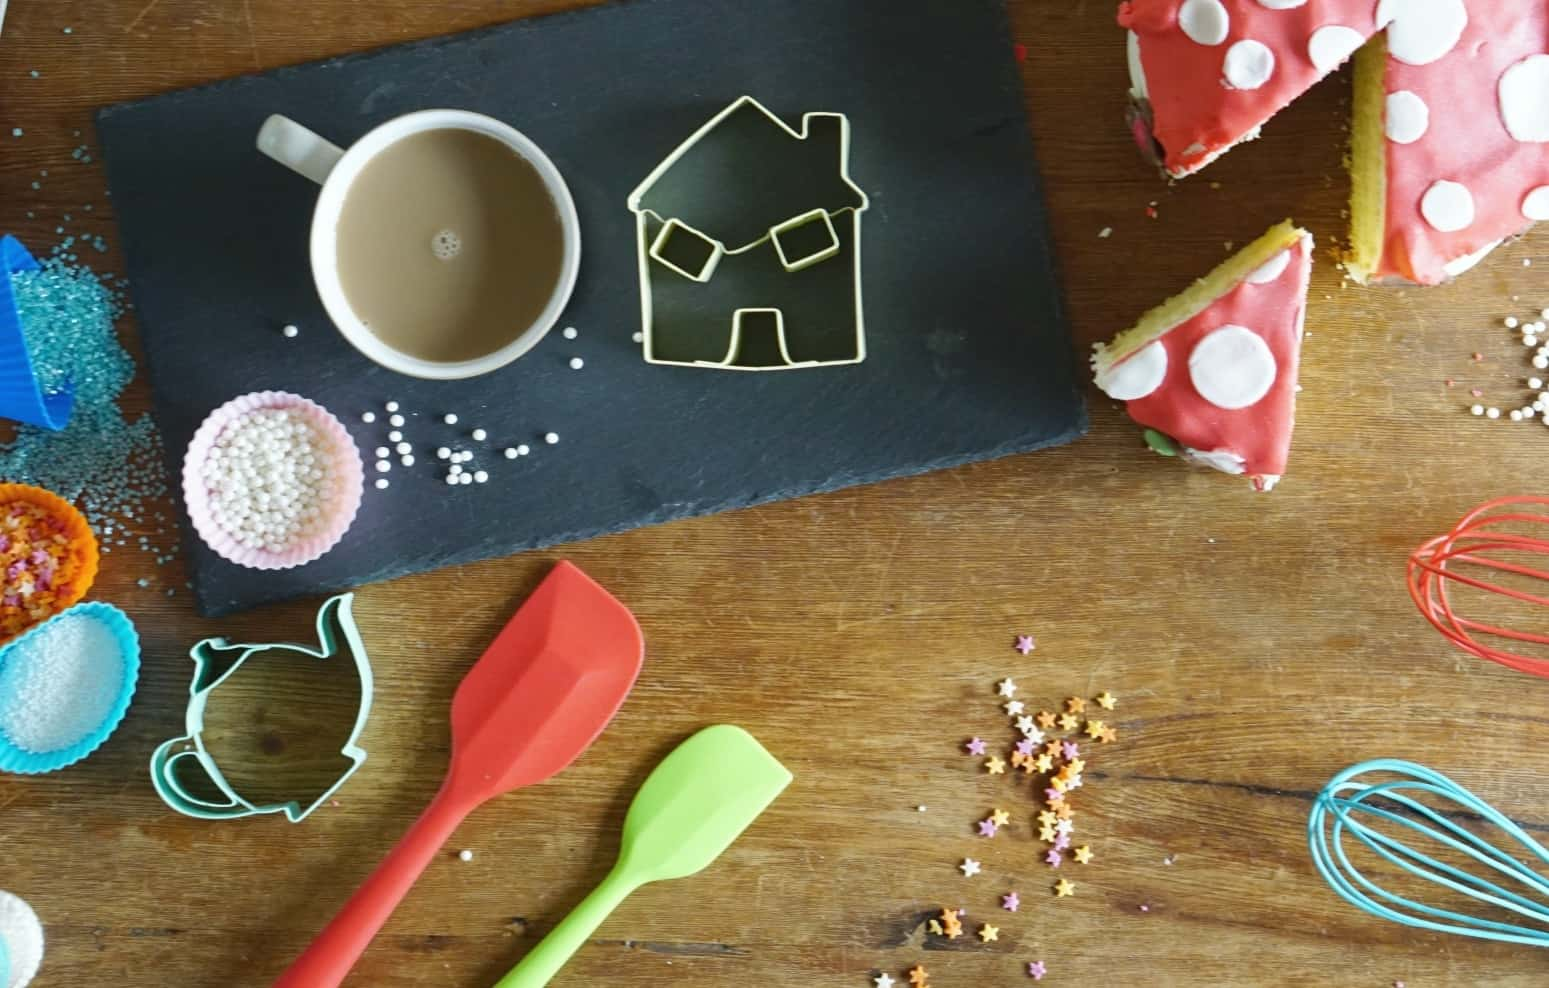 A Day Baking Cakes In London With L&C